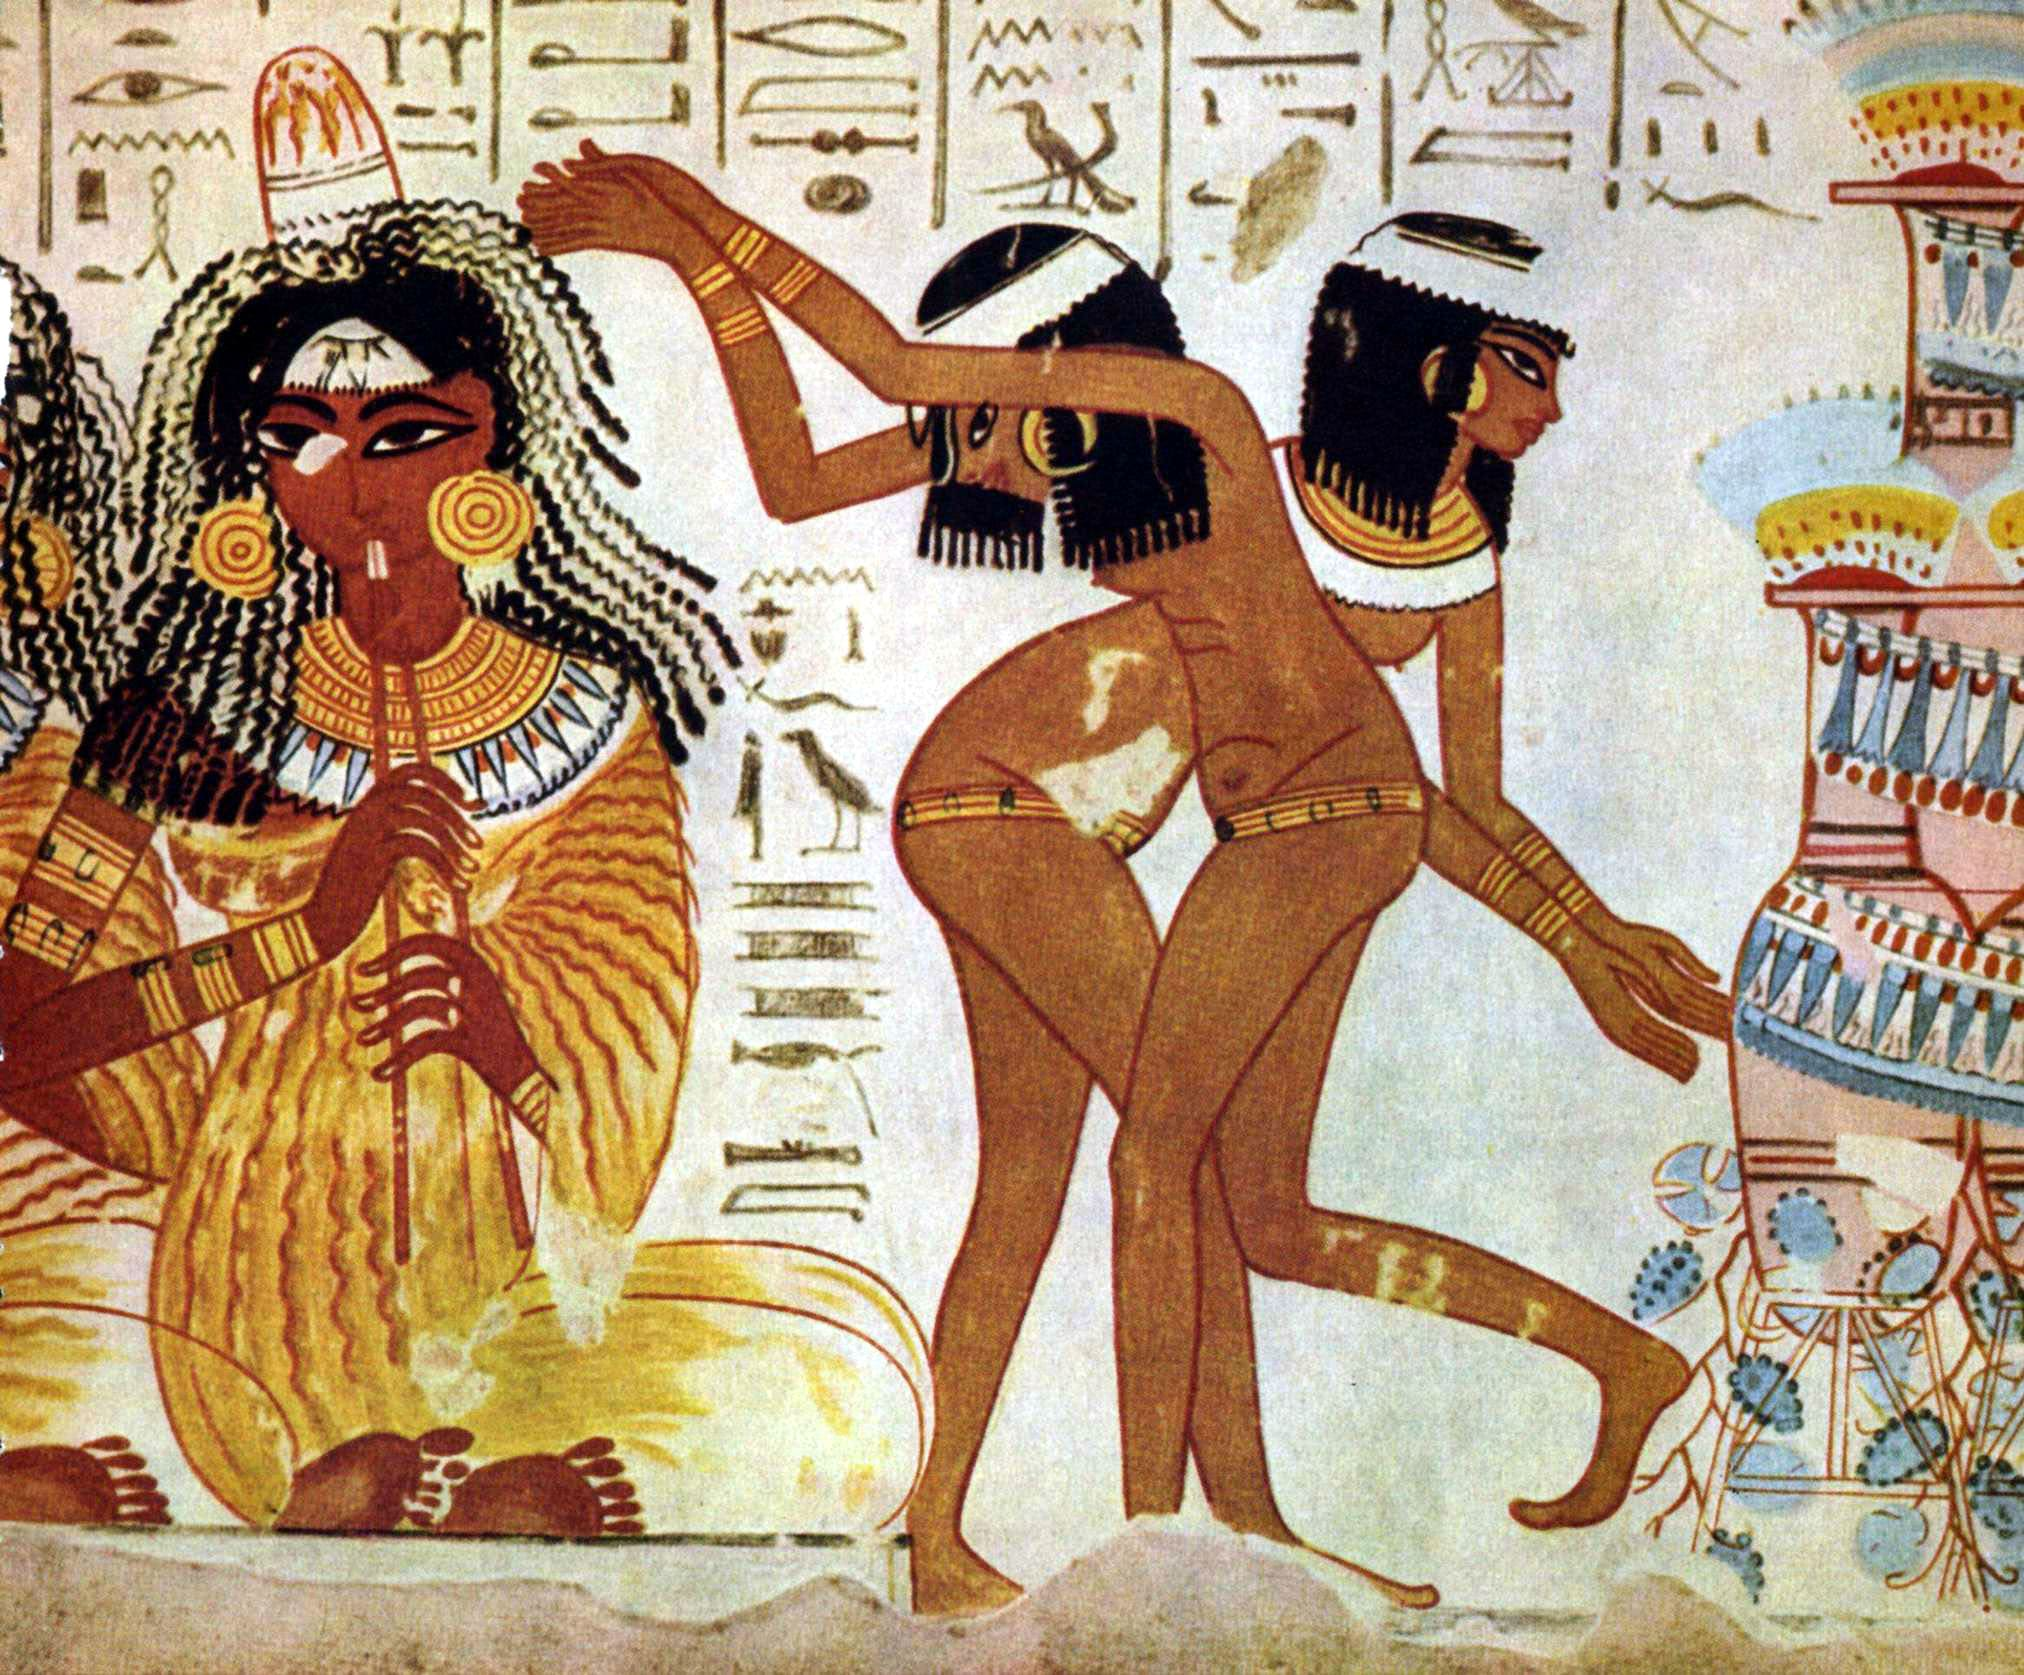 A fresco from the tomb of nebamun